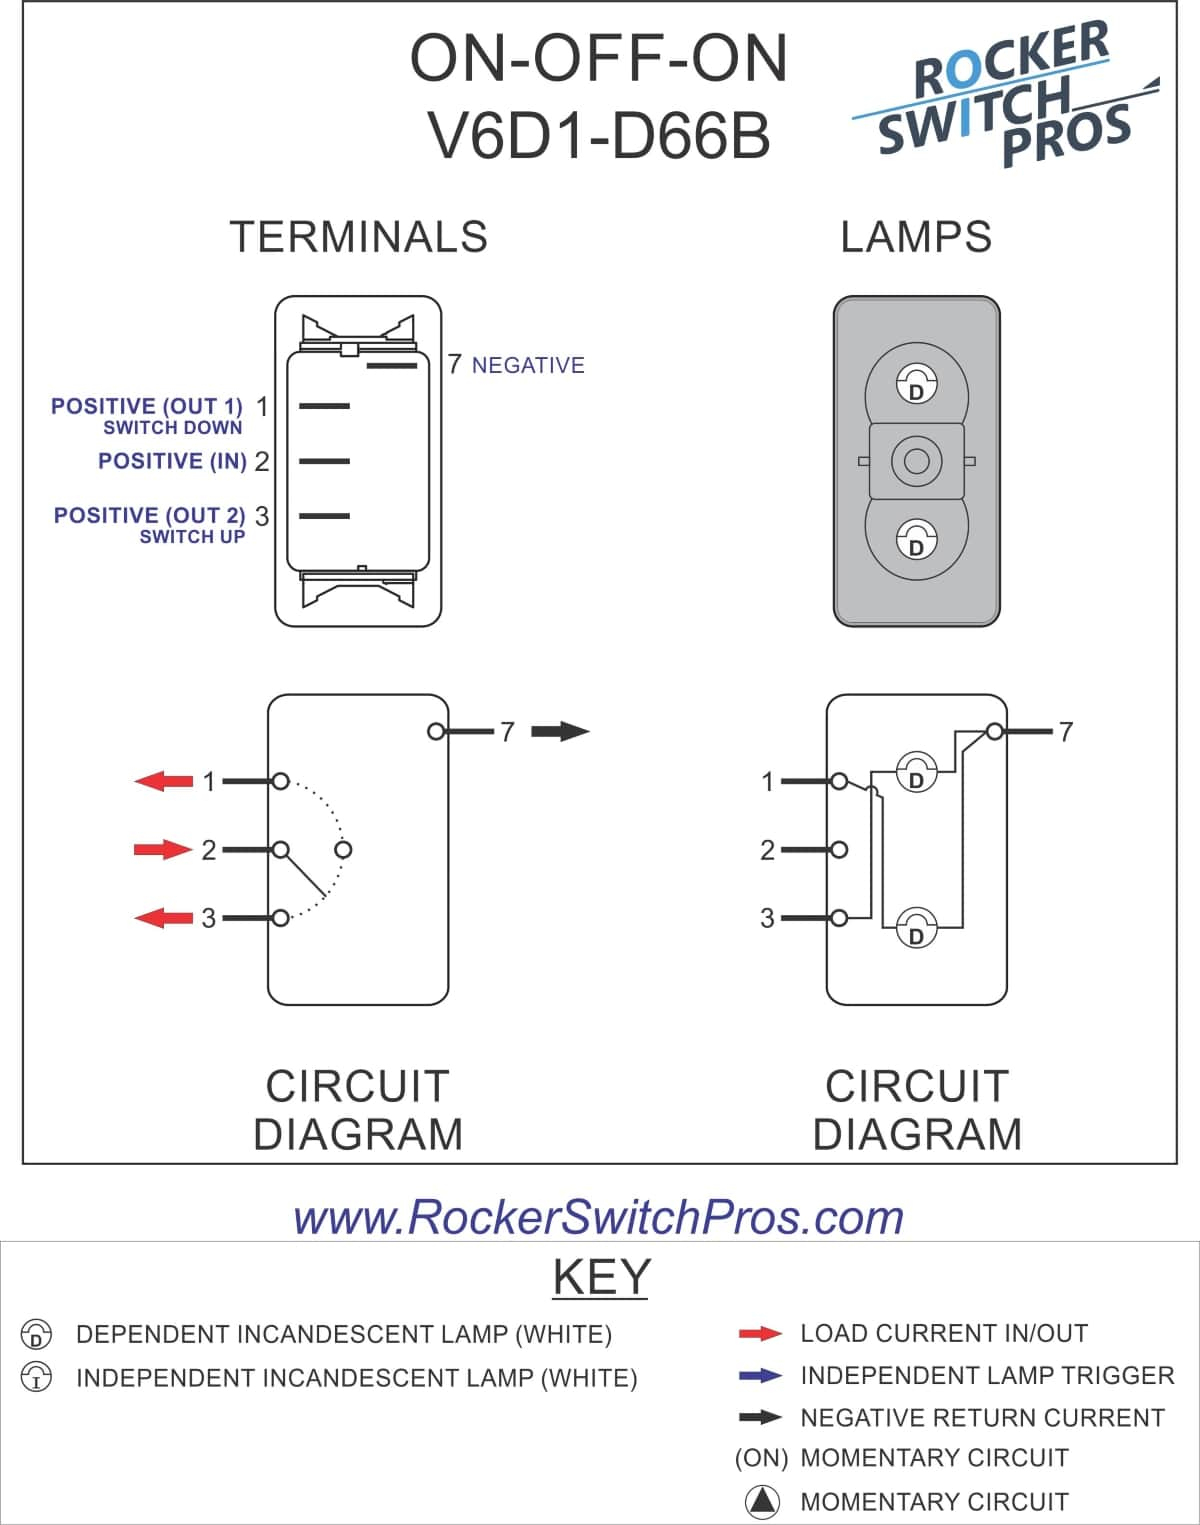 V6D1 Rocker Switch | On-Off-On | Spdt | 2 Lights | Rocker Switch Pros - Carling Switch Wiring Diagram